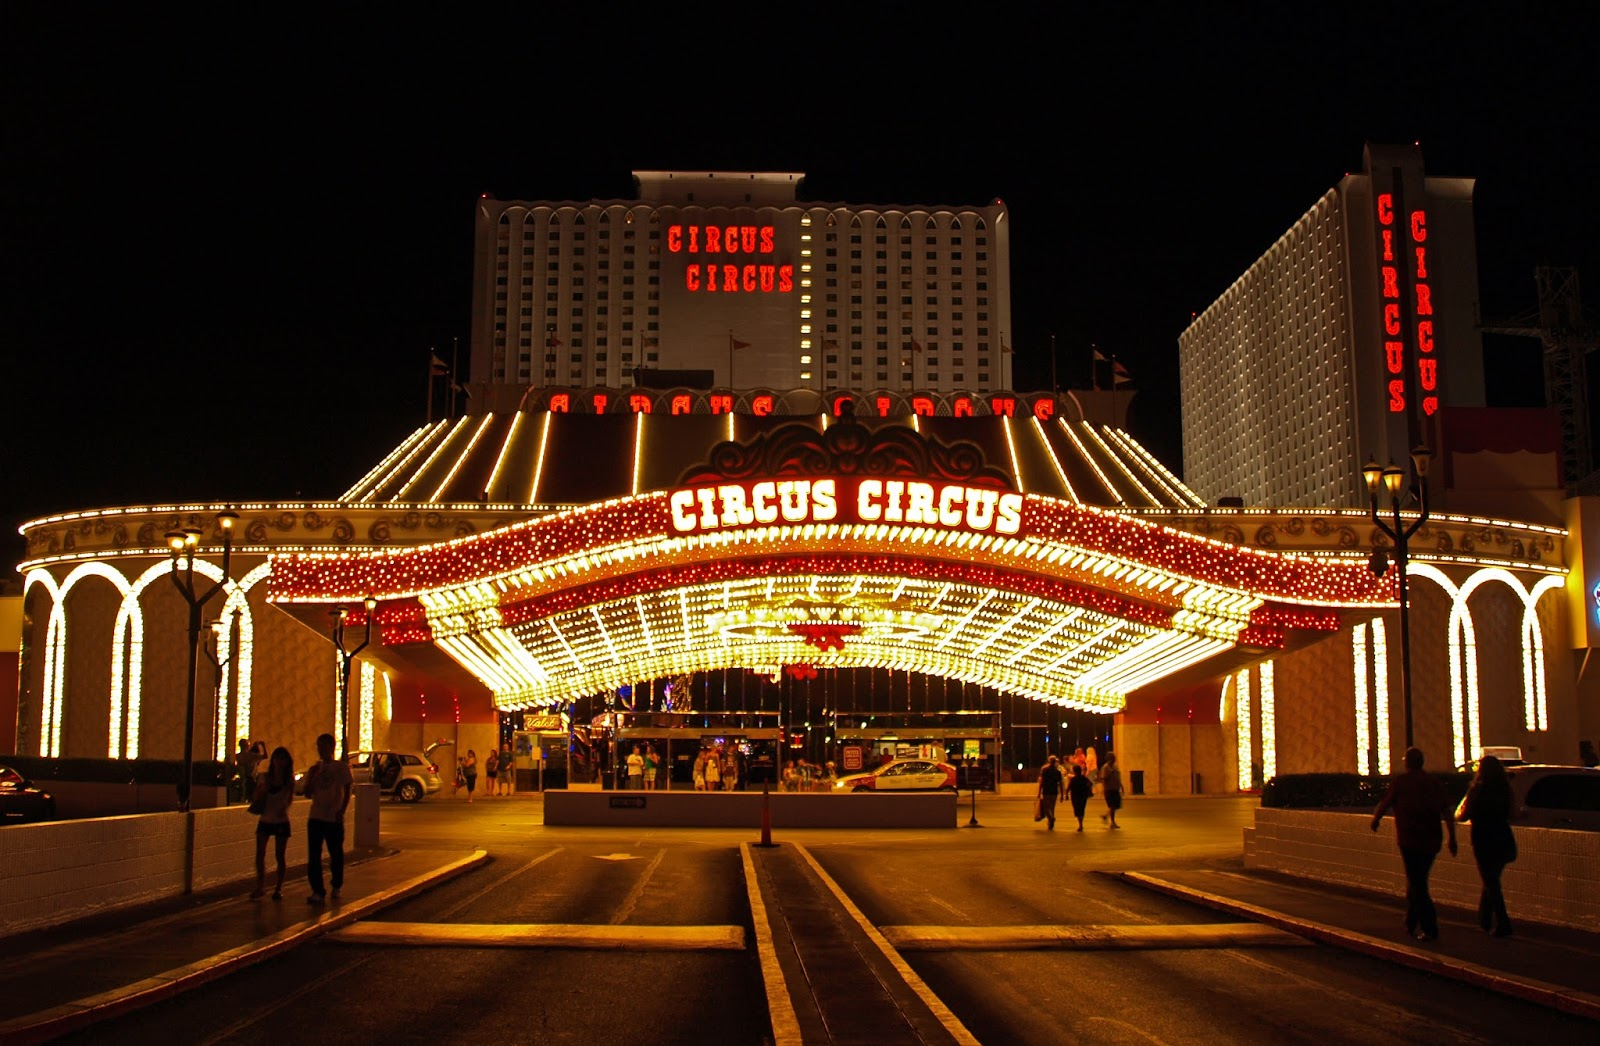 I was incredibly inspired by the Circus Circus because its strong resemblance to an actual circus. The hotel entrance looks like an actual circus tent ... & K-Party With Payton ~: Day to Night: The Ultimate Vegas Outfit